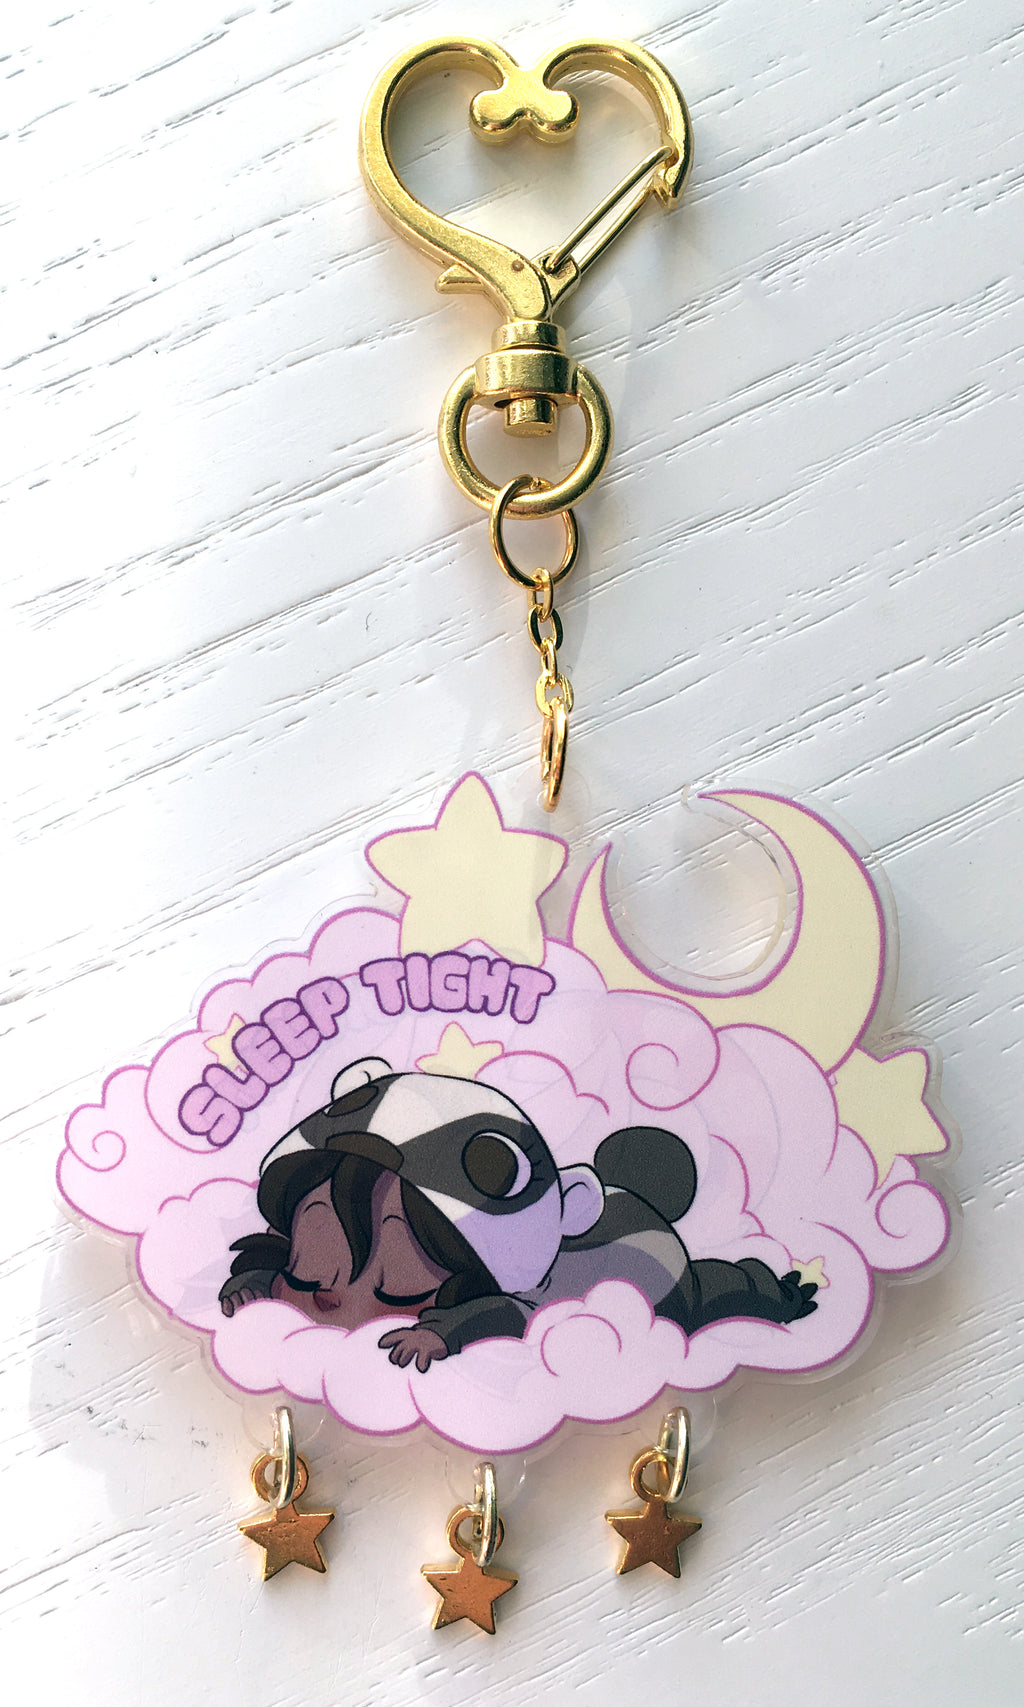 Goodnight/Sleep Tight Double-Sided Acrylic Keychain